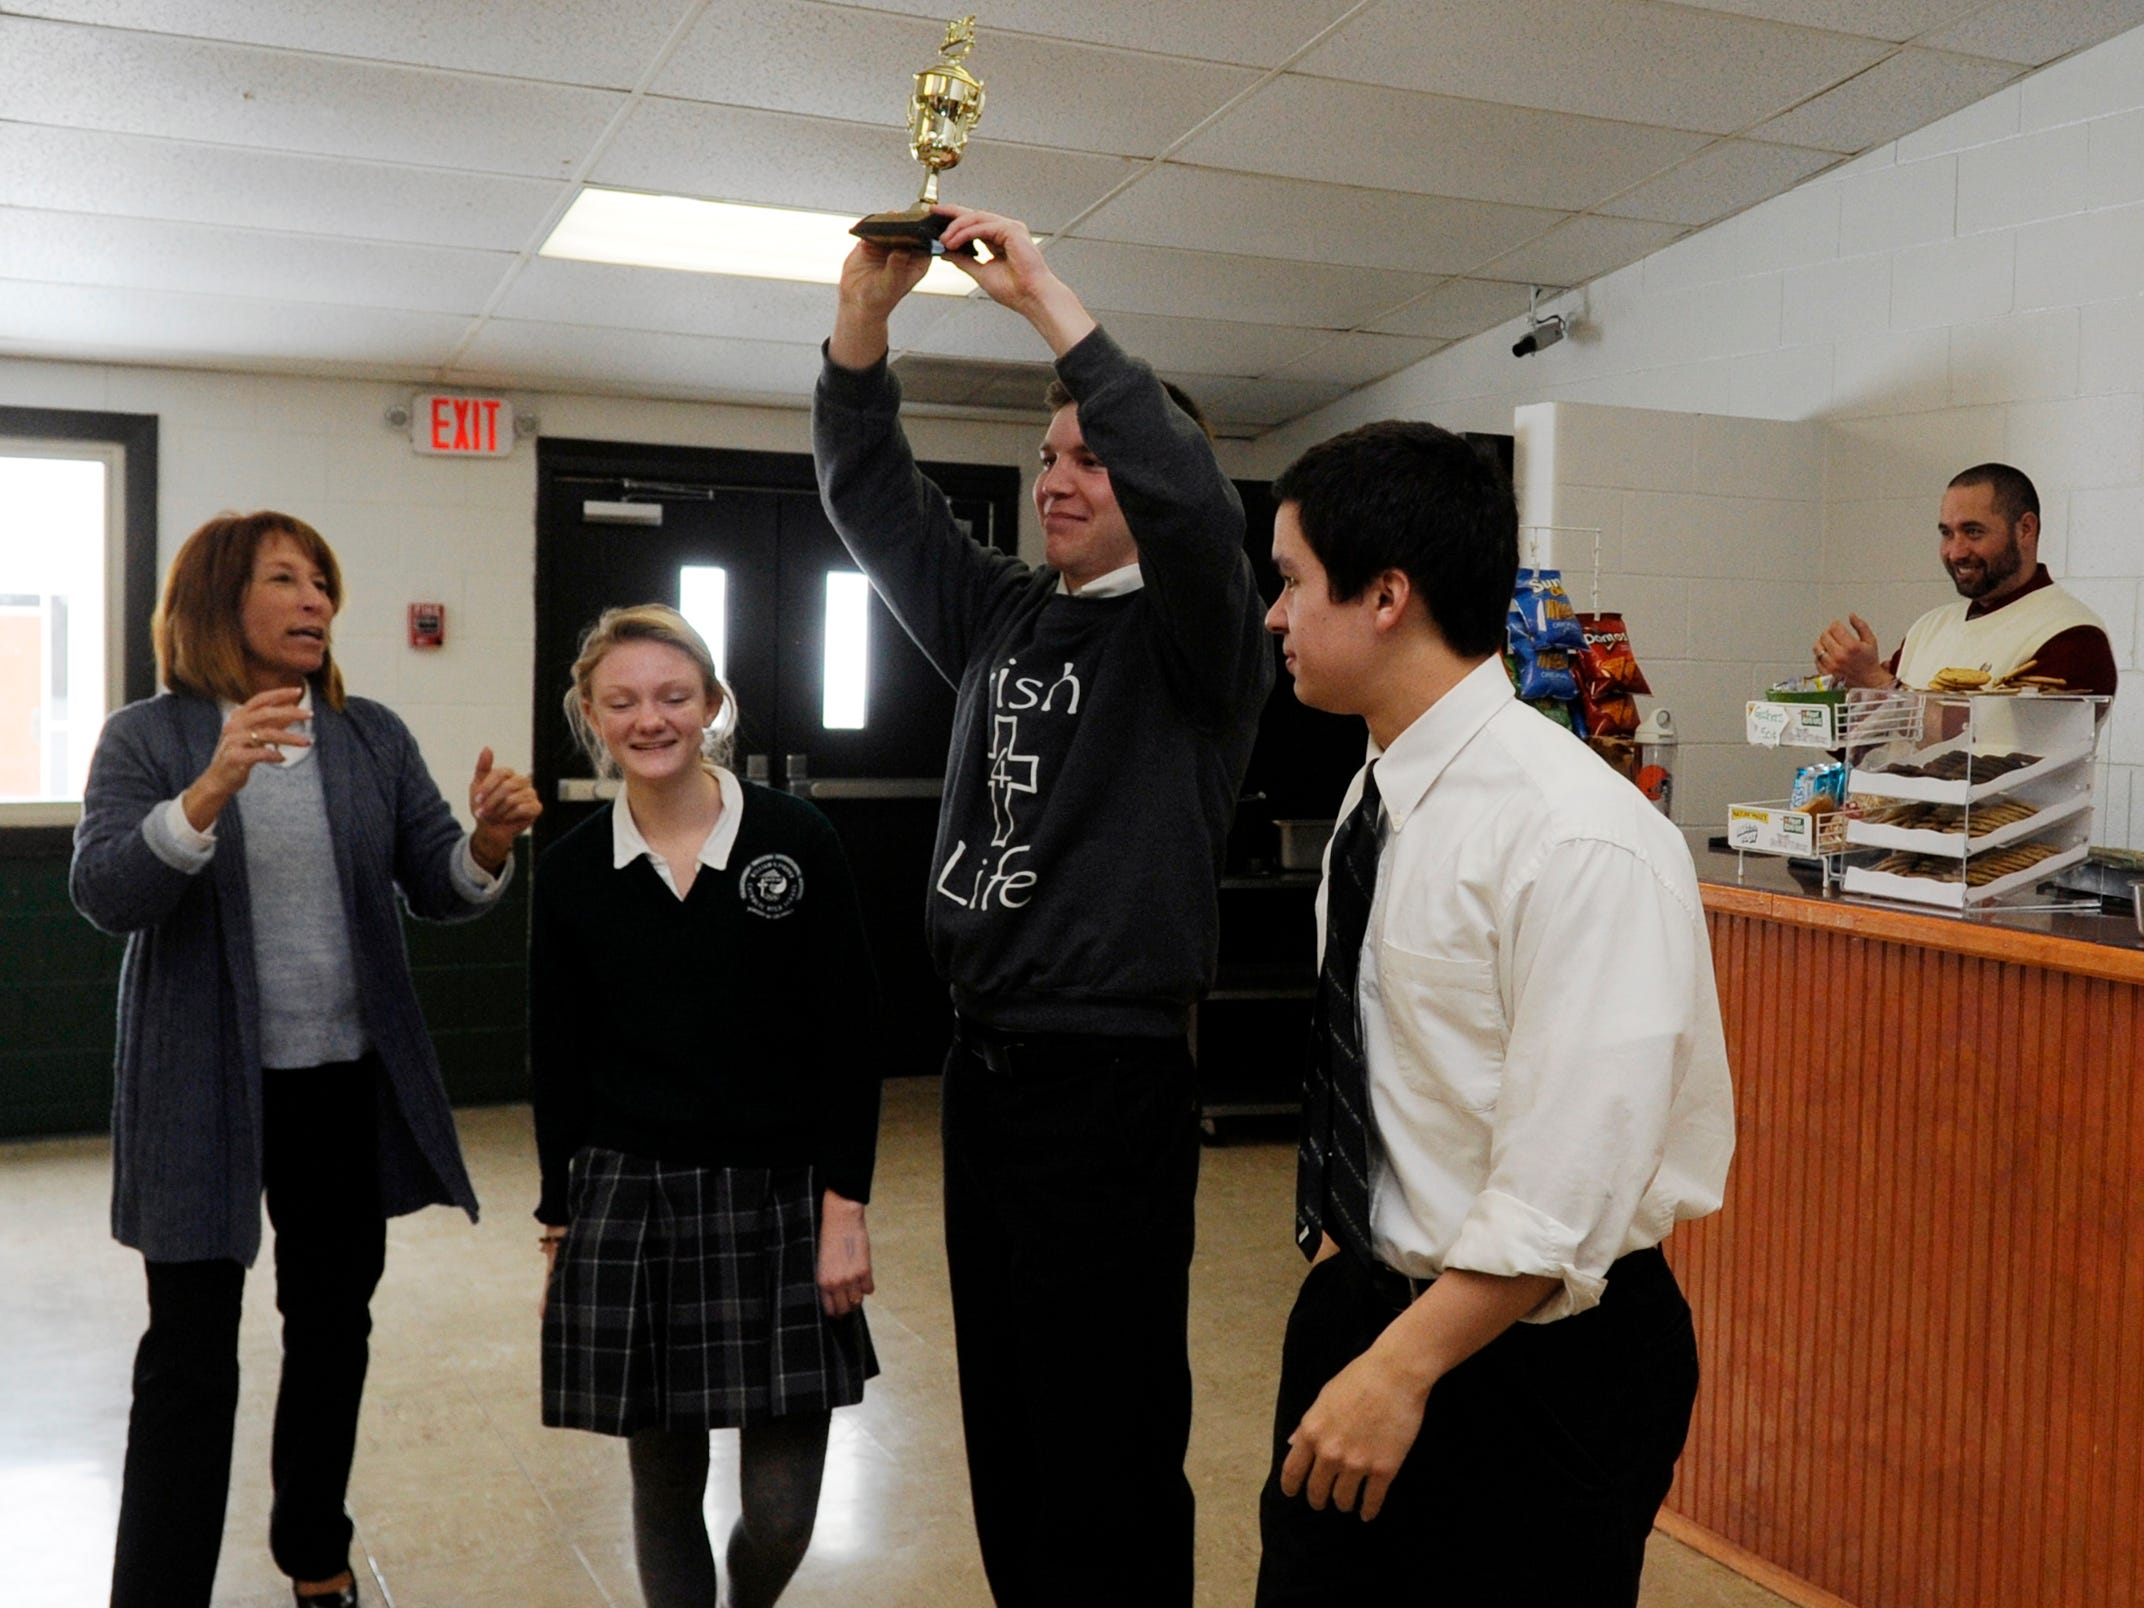 Eli Frazier holds up the 2015 Lancaster Eagle-Gazette Battle of the Fans Champion trophy Wednesday in the Fisher Catholic High School cafeteria in Lancaster.